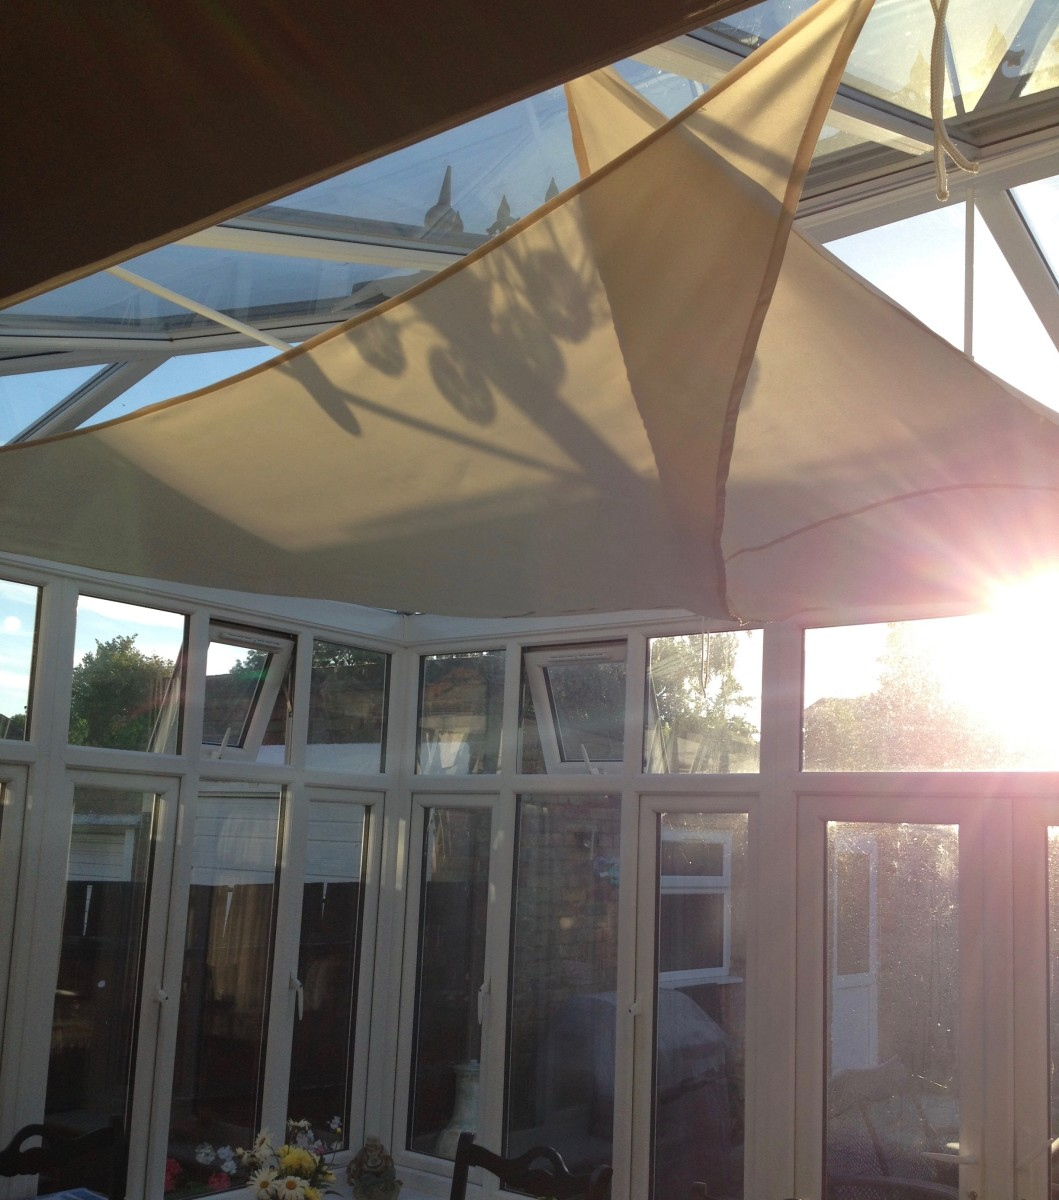 How To Create Shade In A Hot Conservatory Using Shade Sails Dengarden Home And Garden